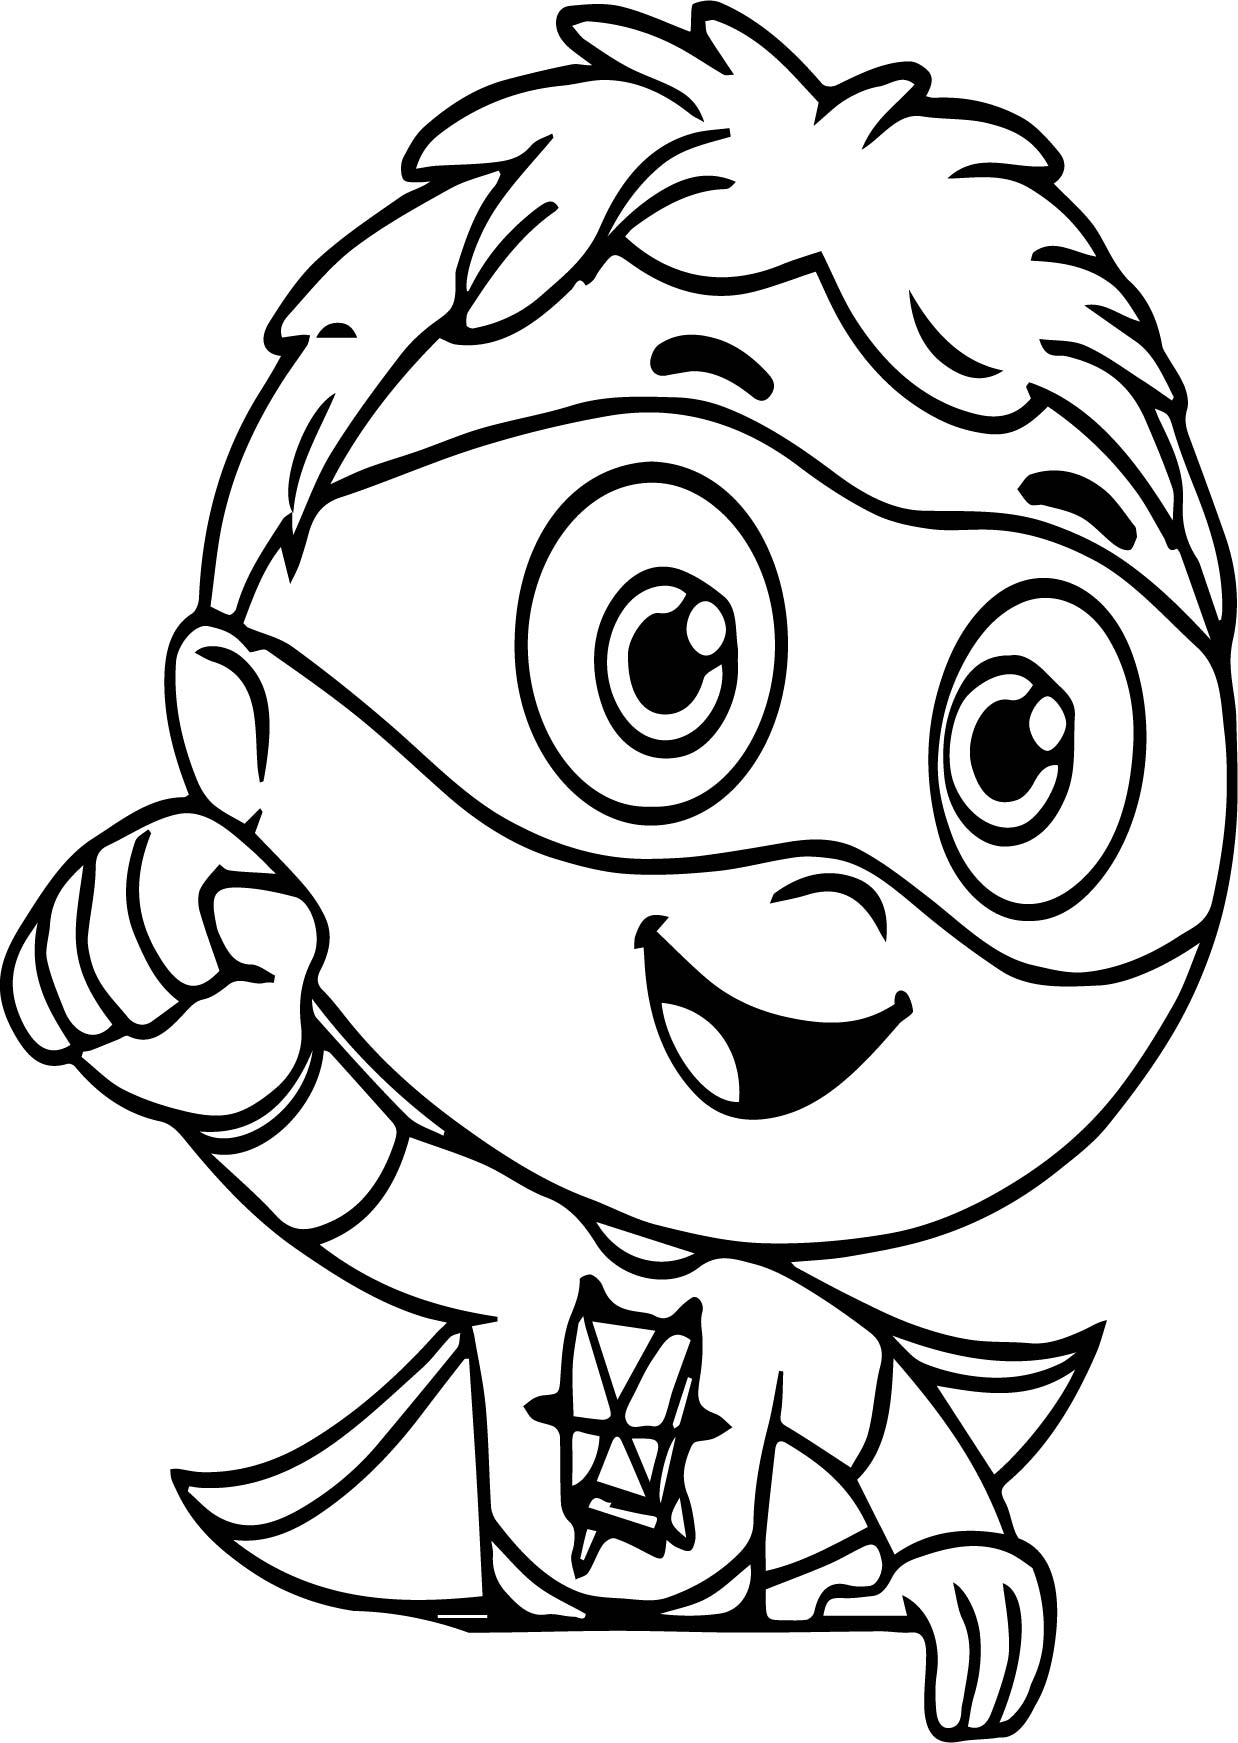 Super Why Coloring Pages Best Coloring Pages For Kids Why Coloring Page